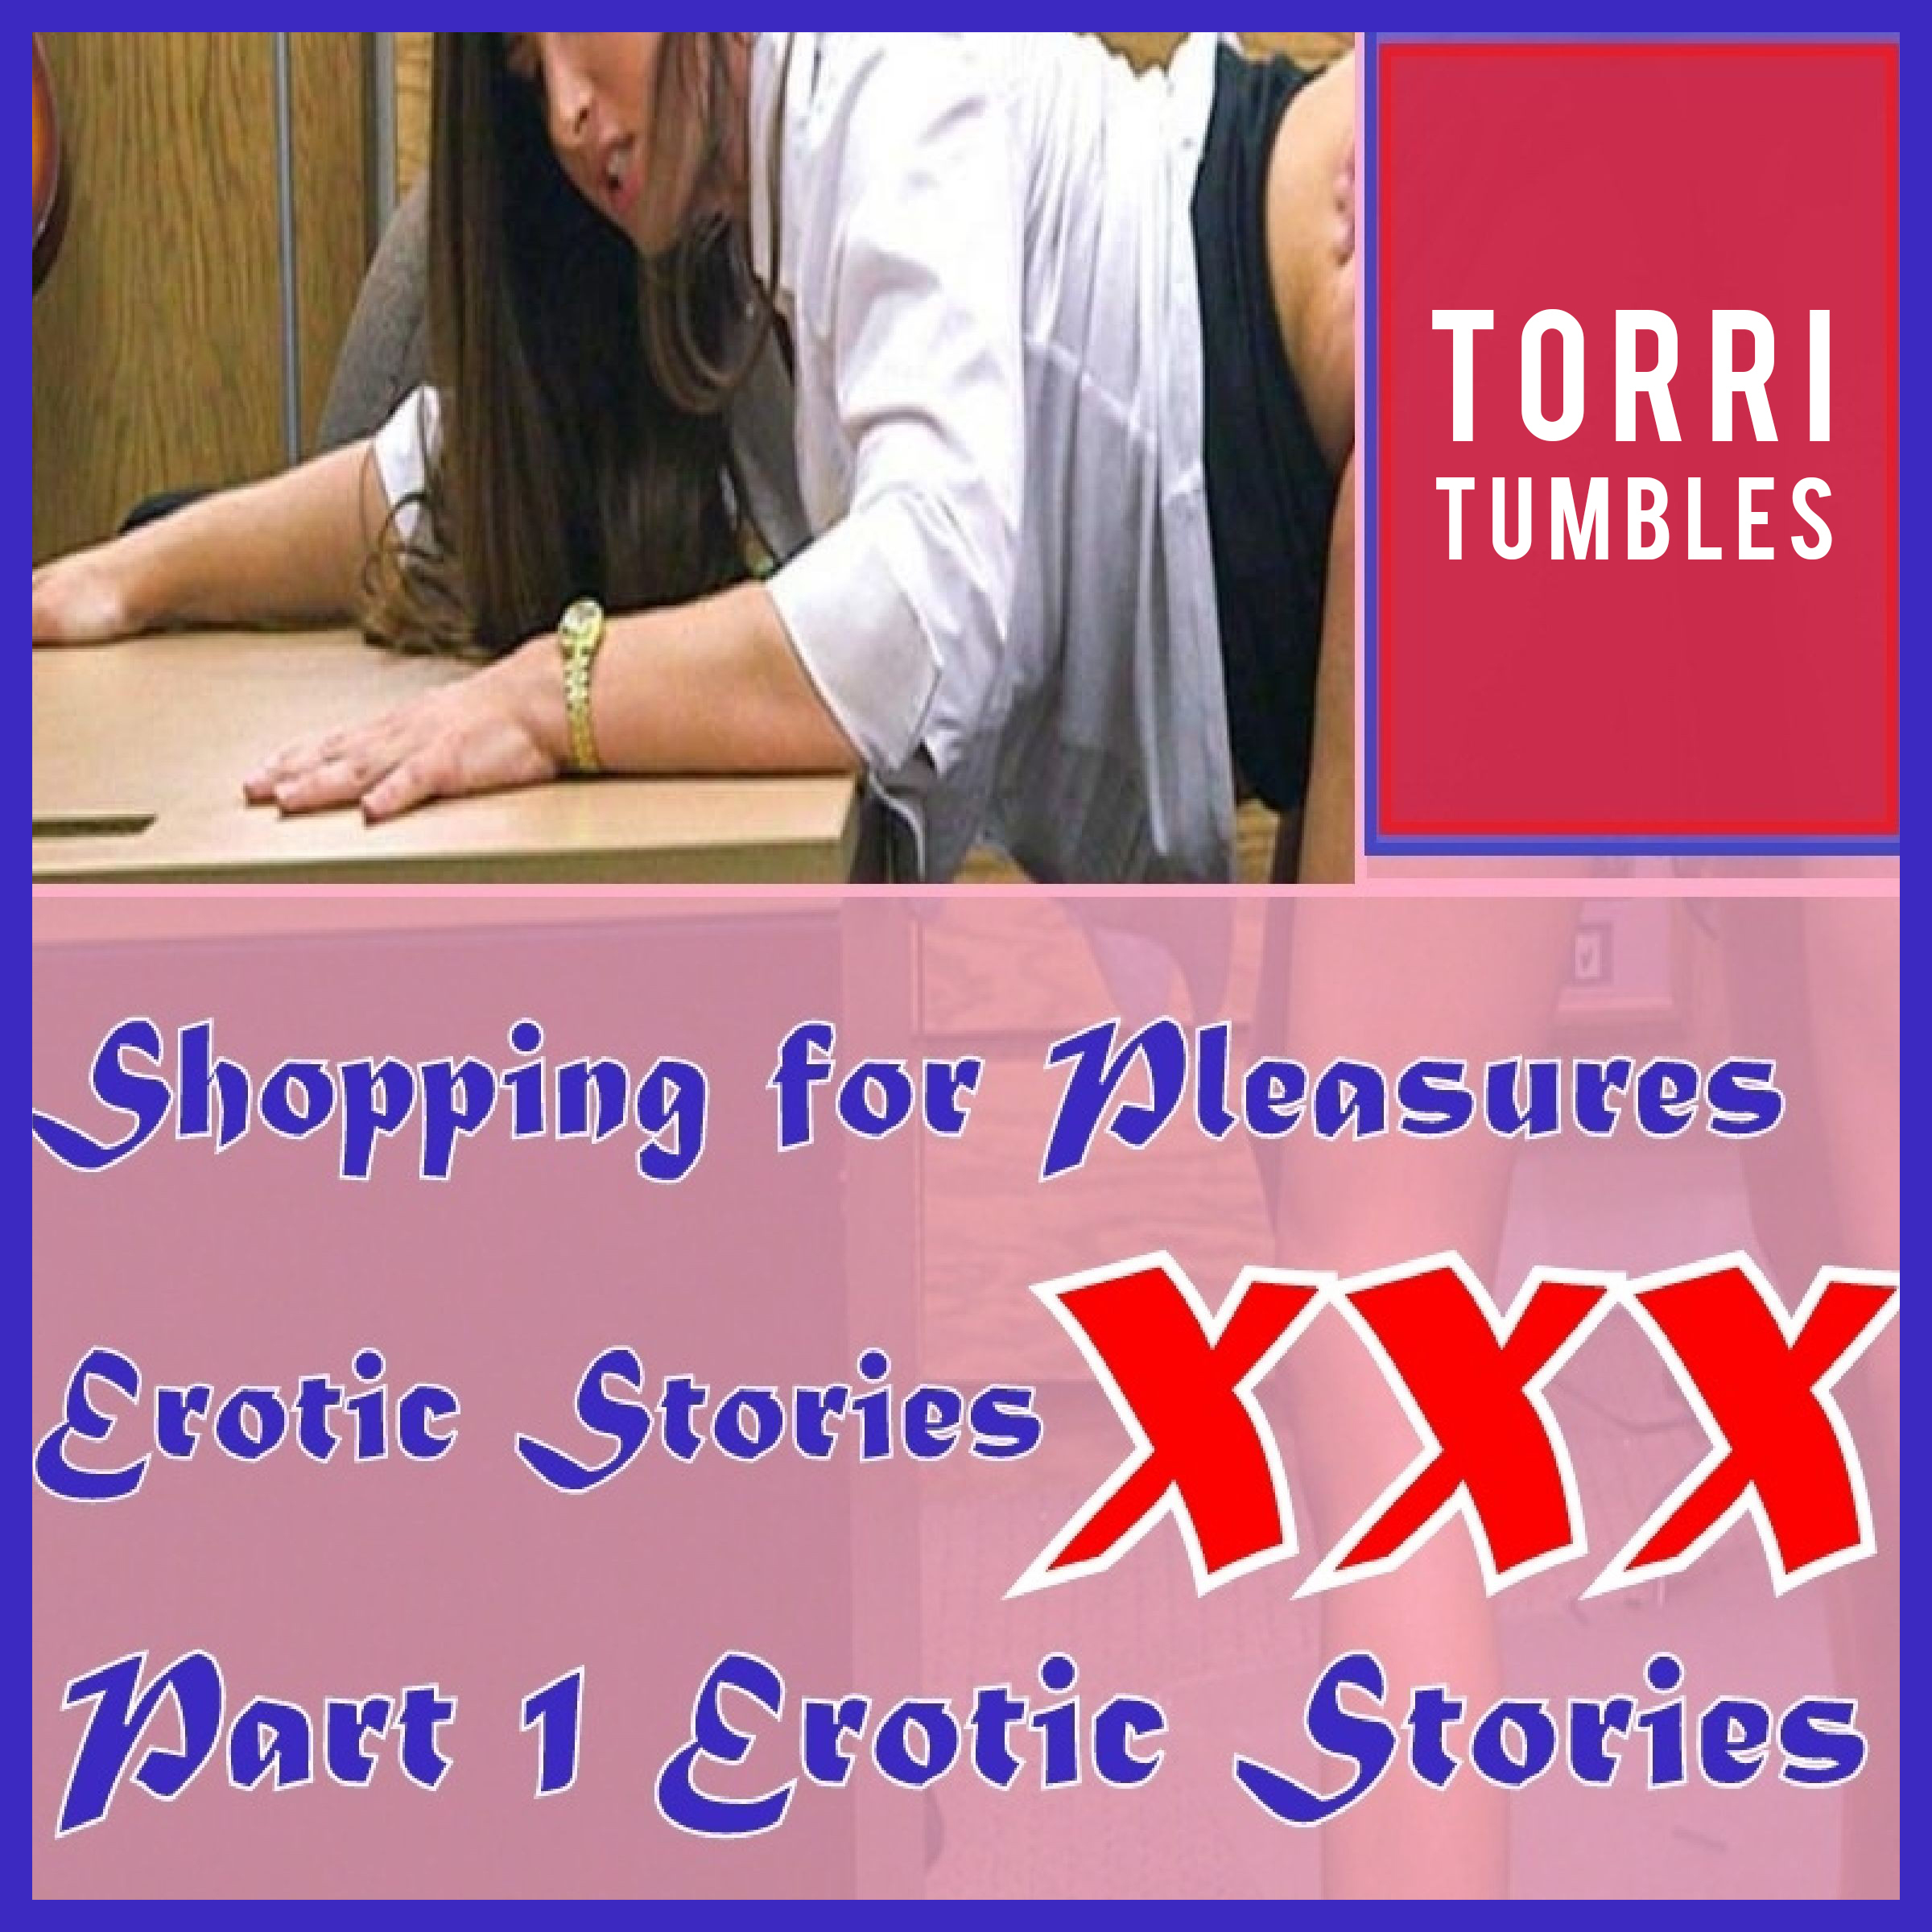 Erotic stories size